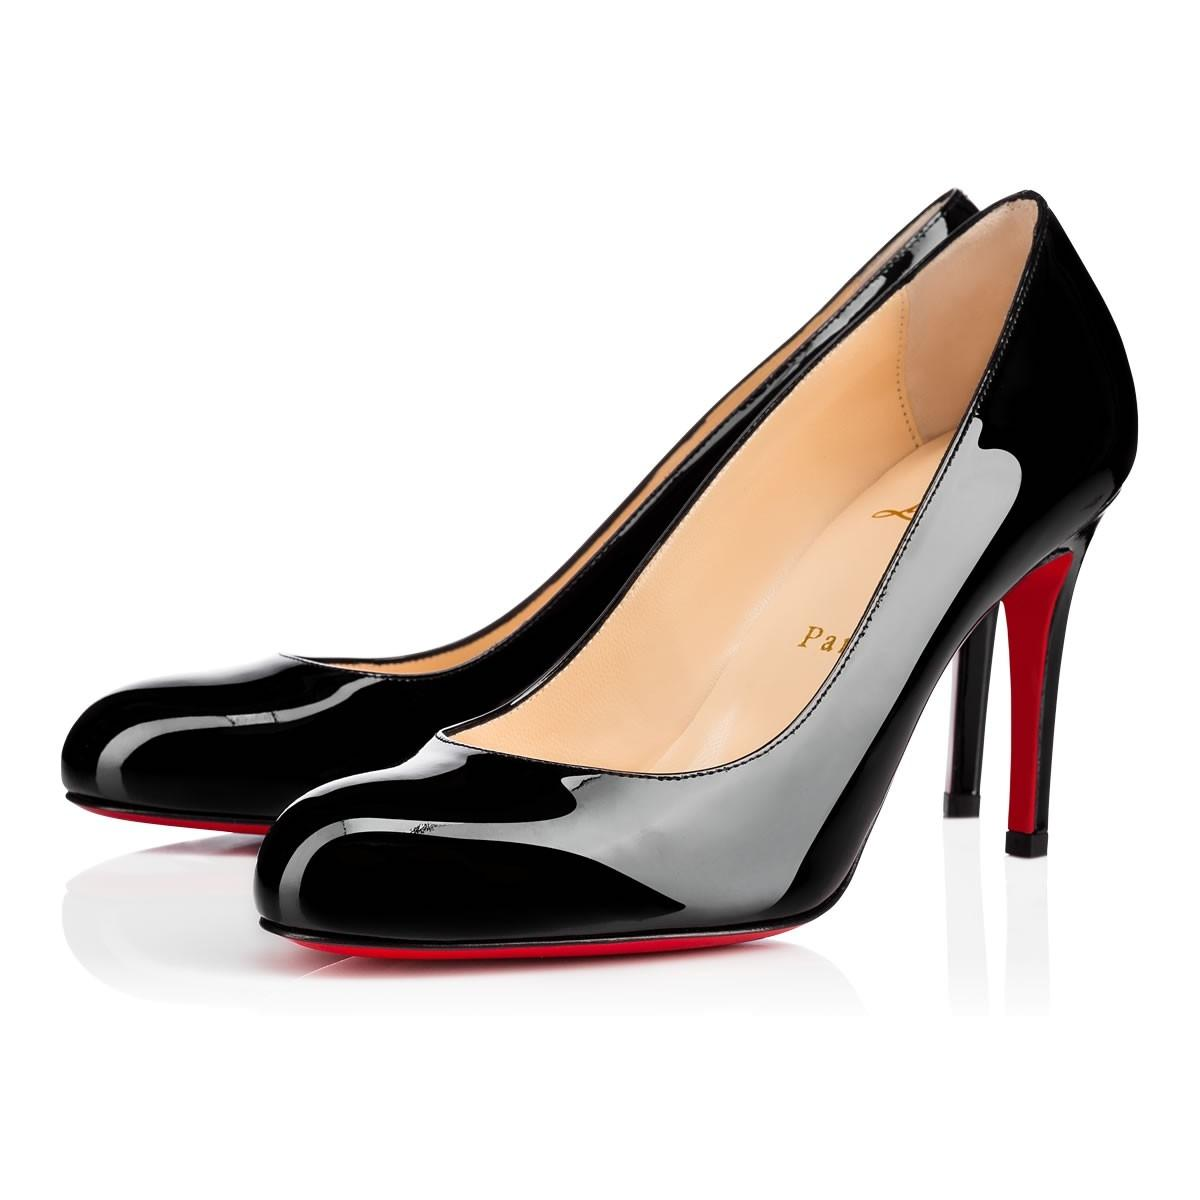 Christian Louboutin Simple Rounded-Toe Pumps cheap sale official site Q6uFkY8jS